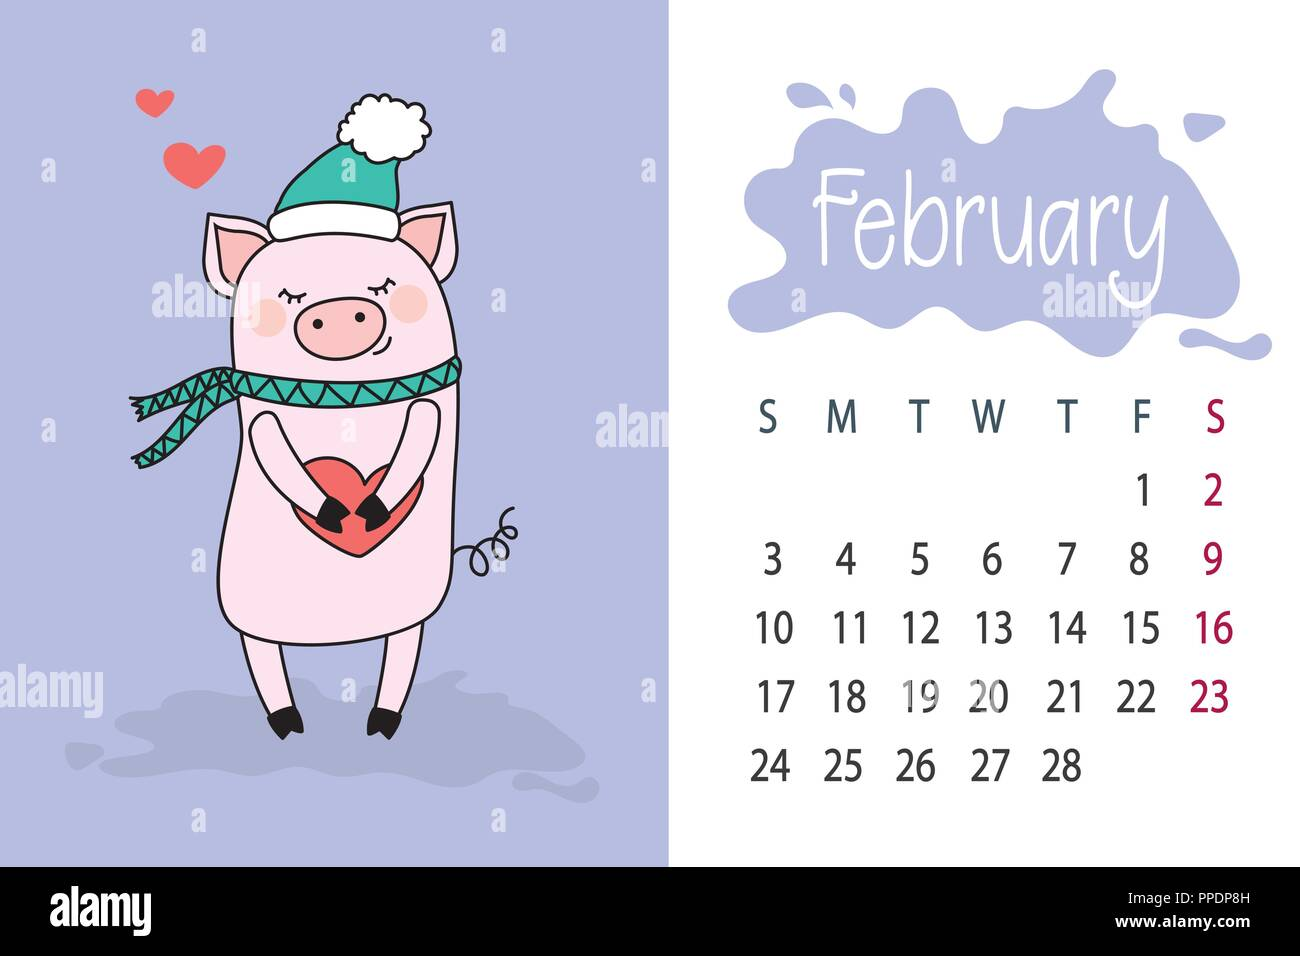 La Calendar February 2019 February month 2019 year calendar page with cute pink pig Stock